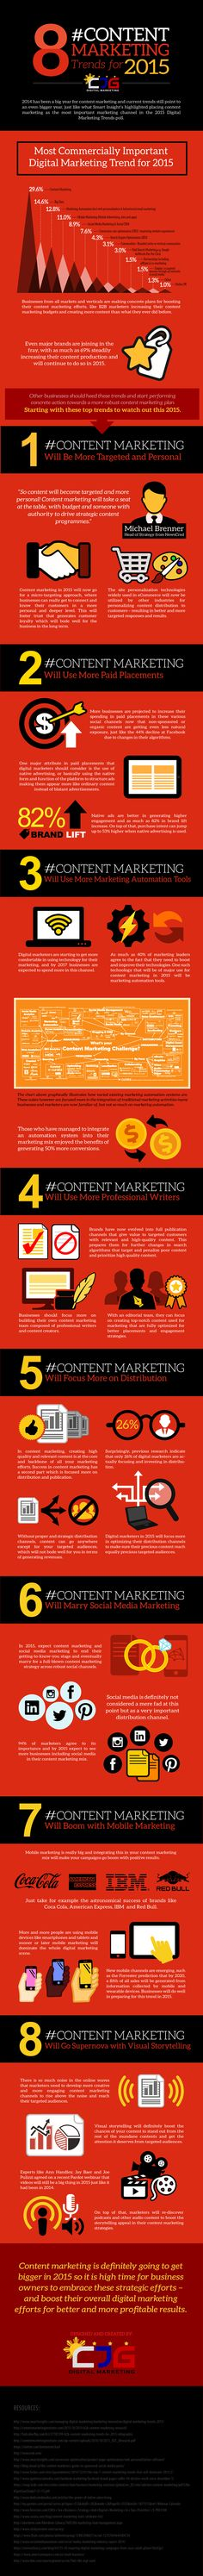 8 Content Marketing Trends for 2015 (Infographic) - An Infographic from CJG Digital Marketing